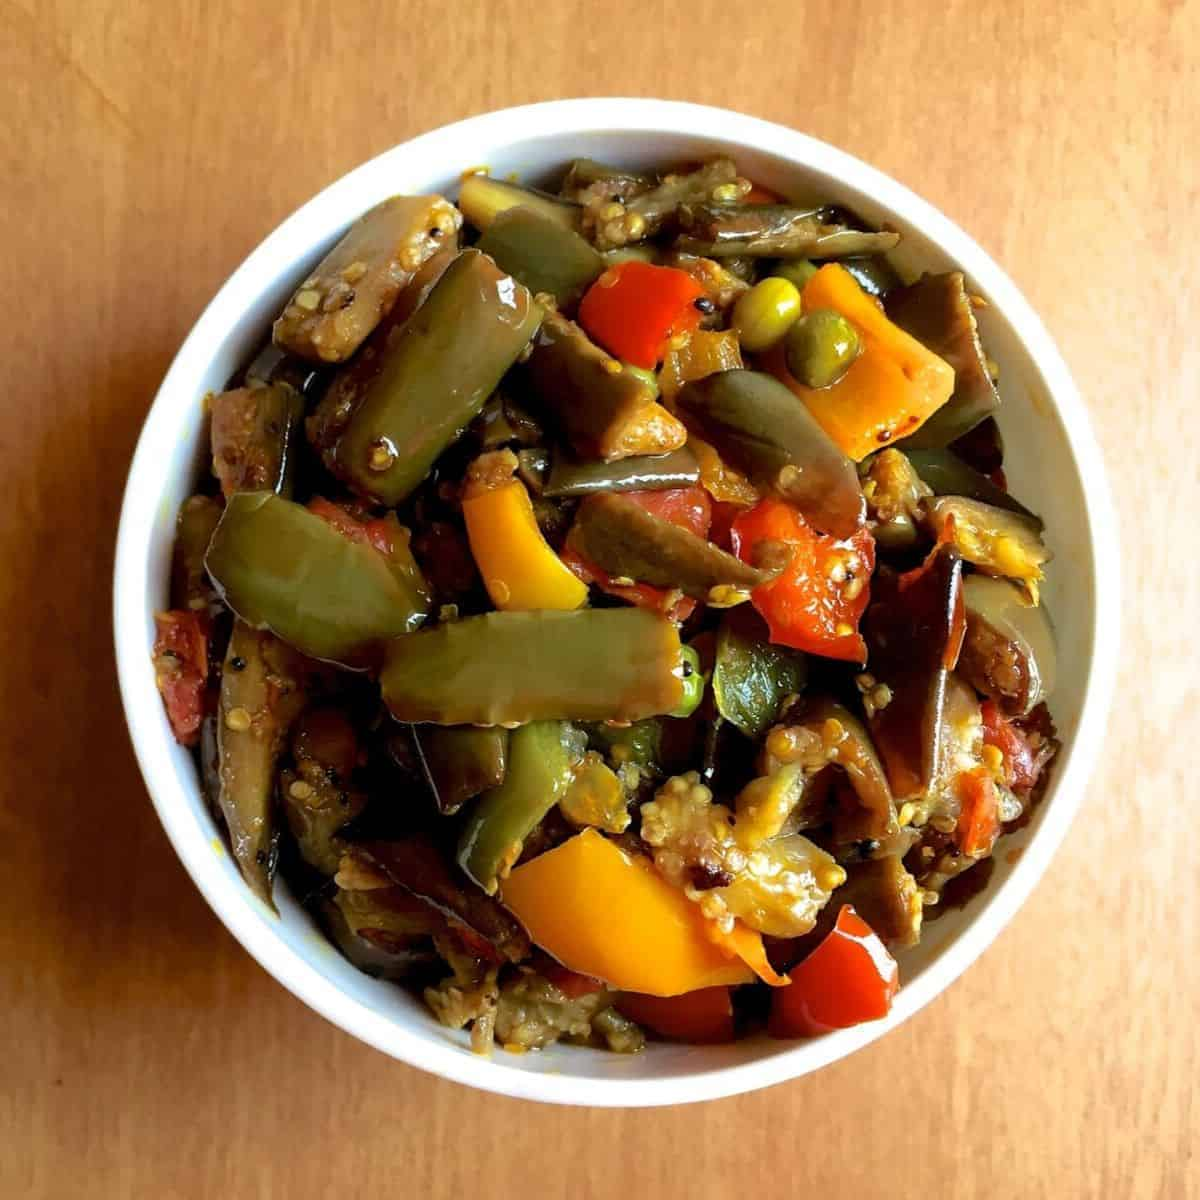 Eggplant/ Brinjal fried with capscium tomato and peas, in a white bowl, on a yellow background